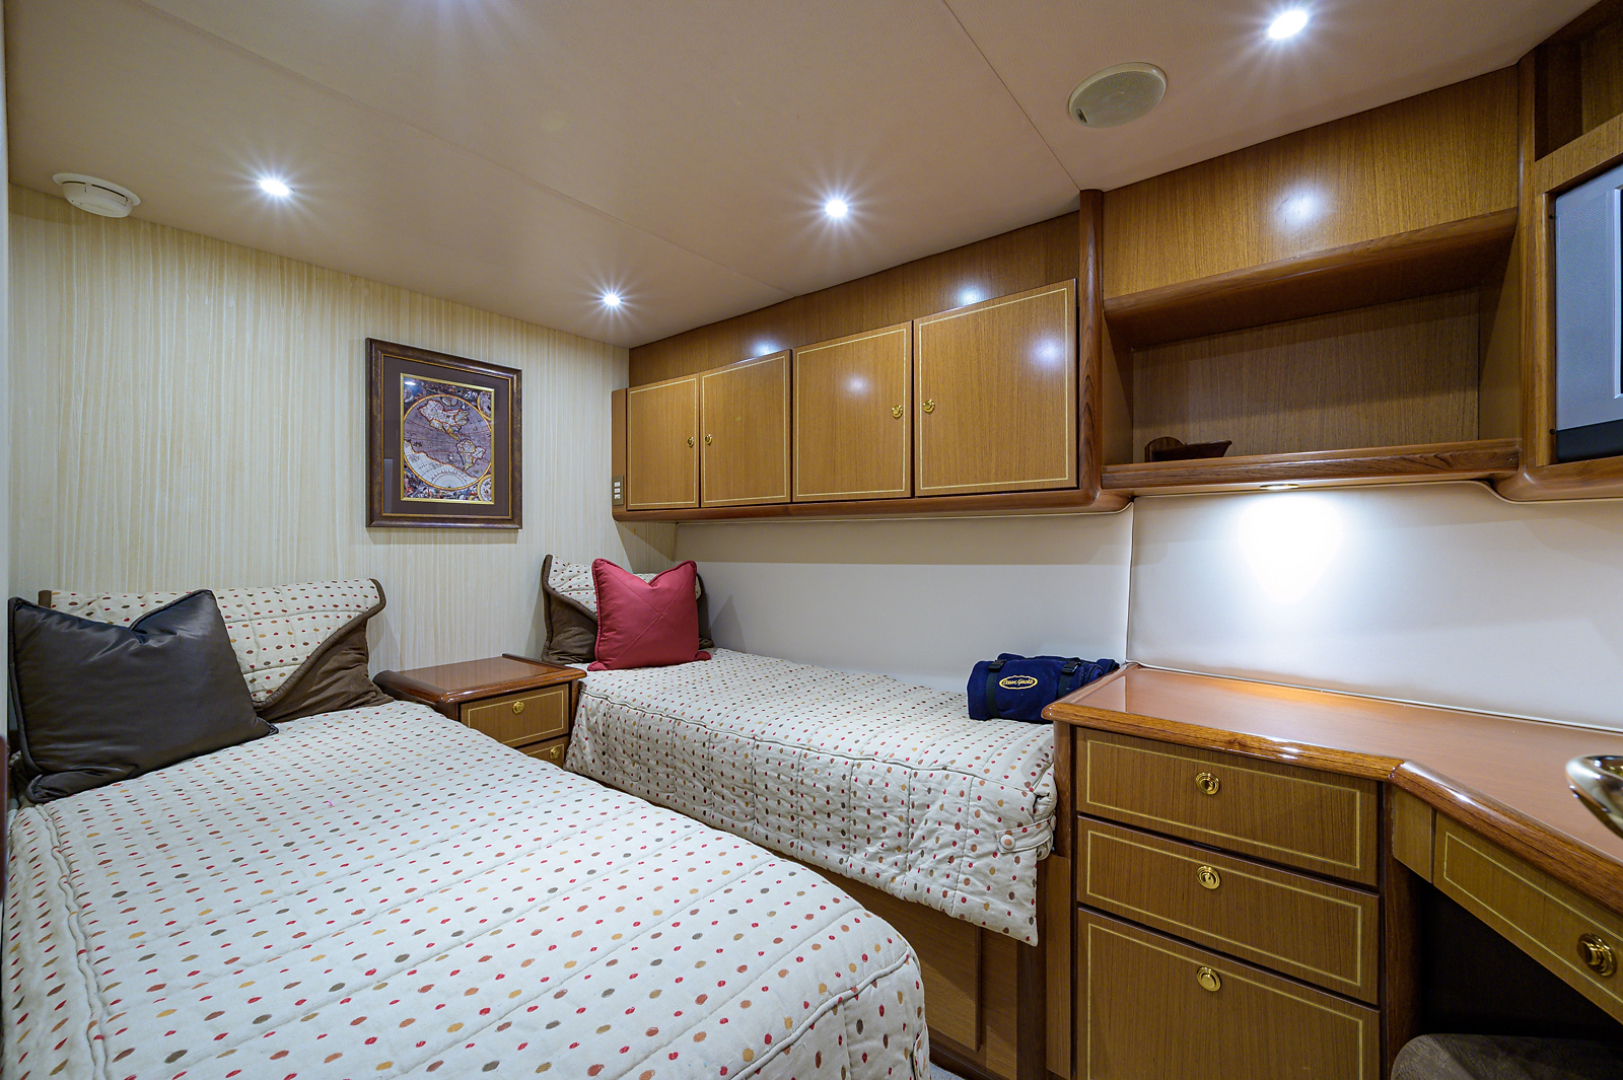 Ocean Yachts-Odyssey 2005-MISS JAN Palm Beach Gardens-Florida-United States-Guest Stateroom-1386981 | Thumbnail